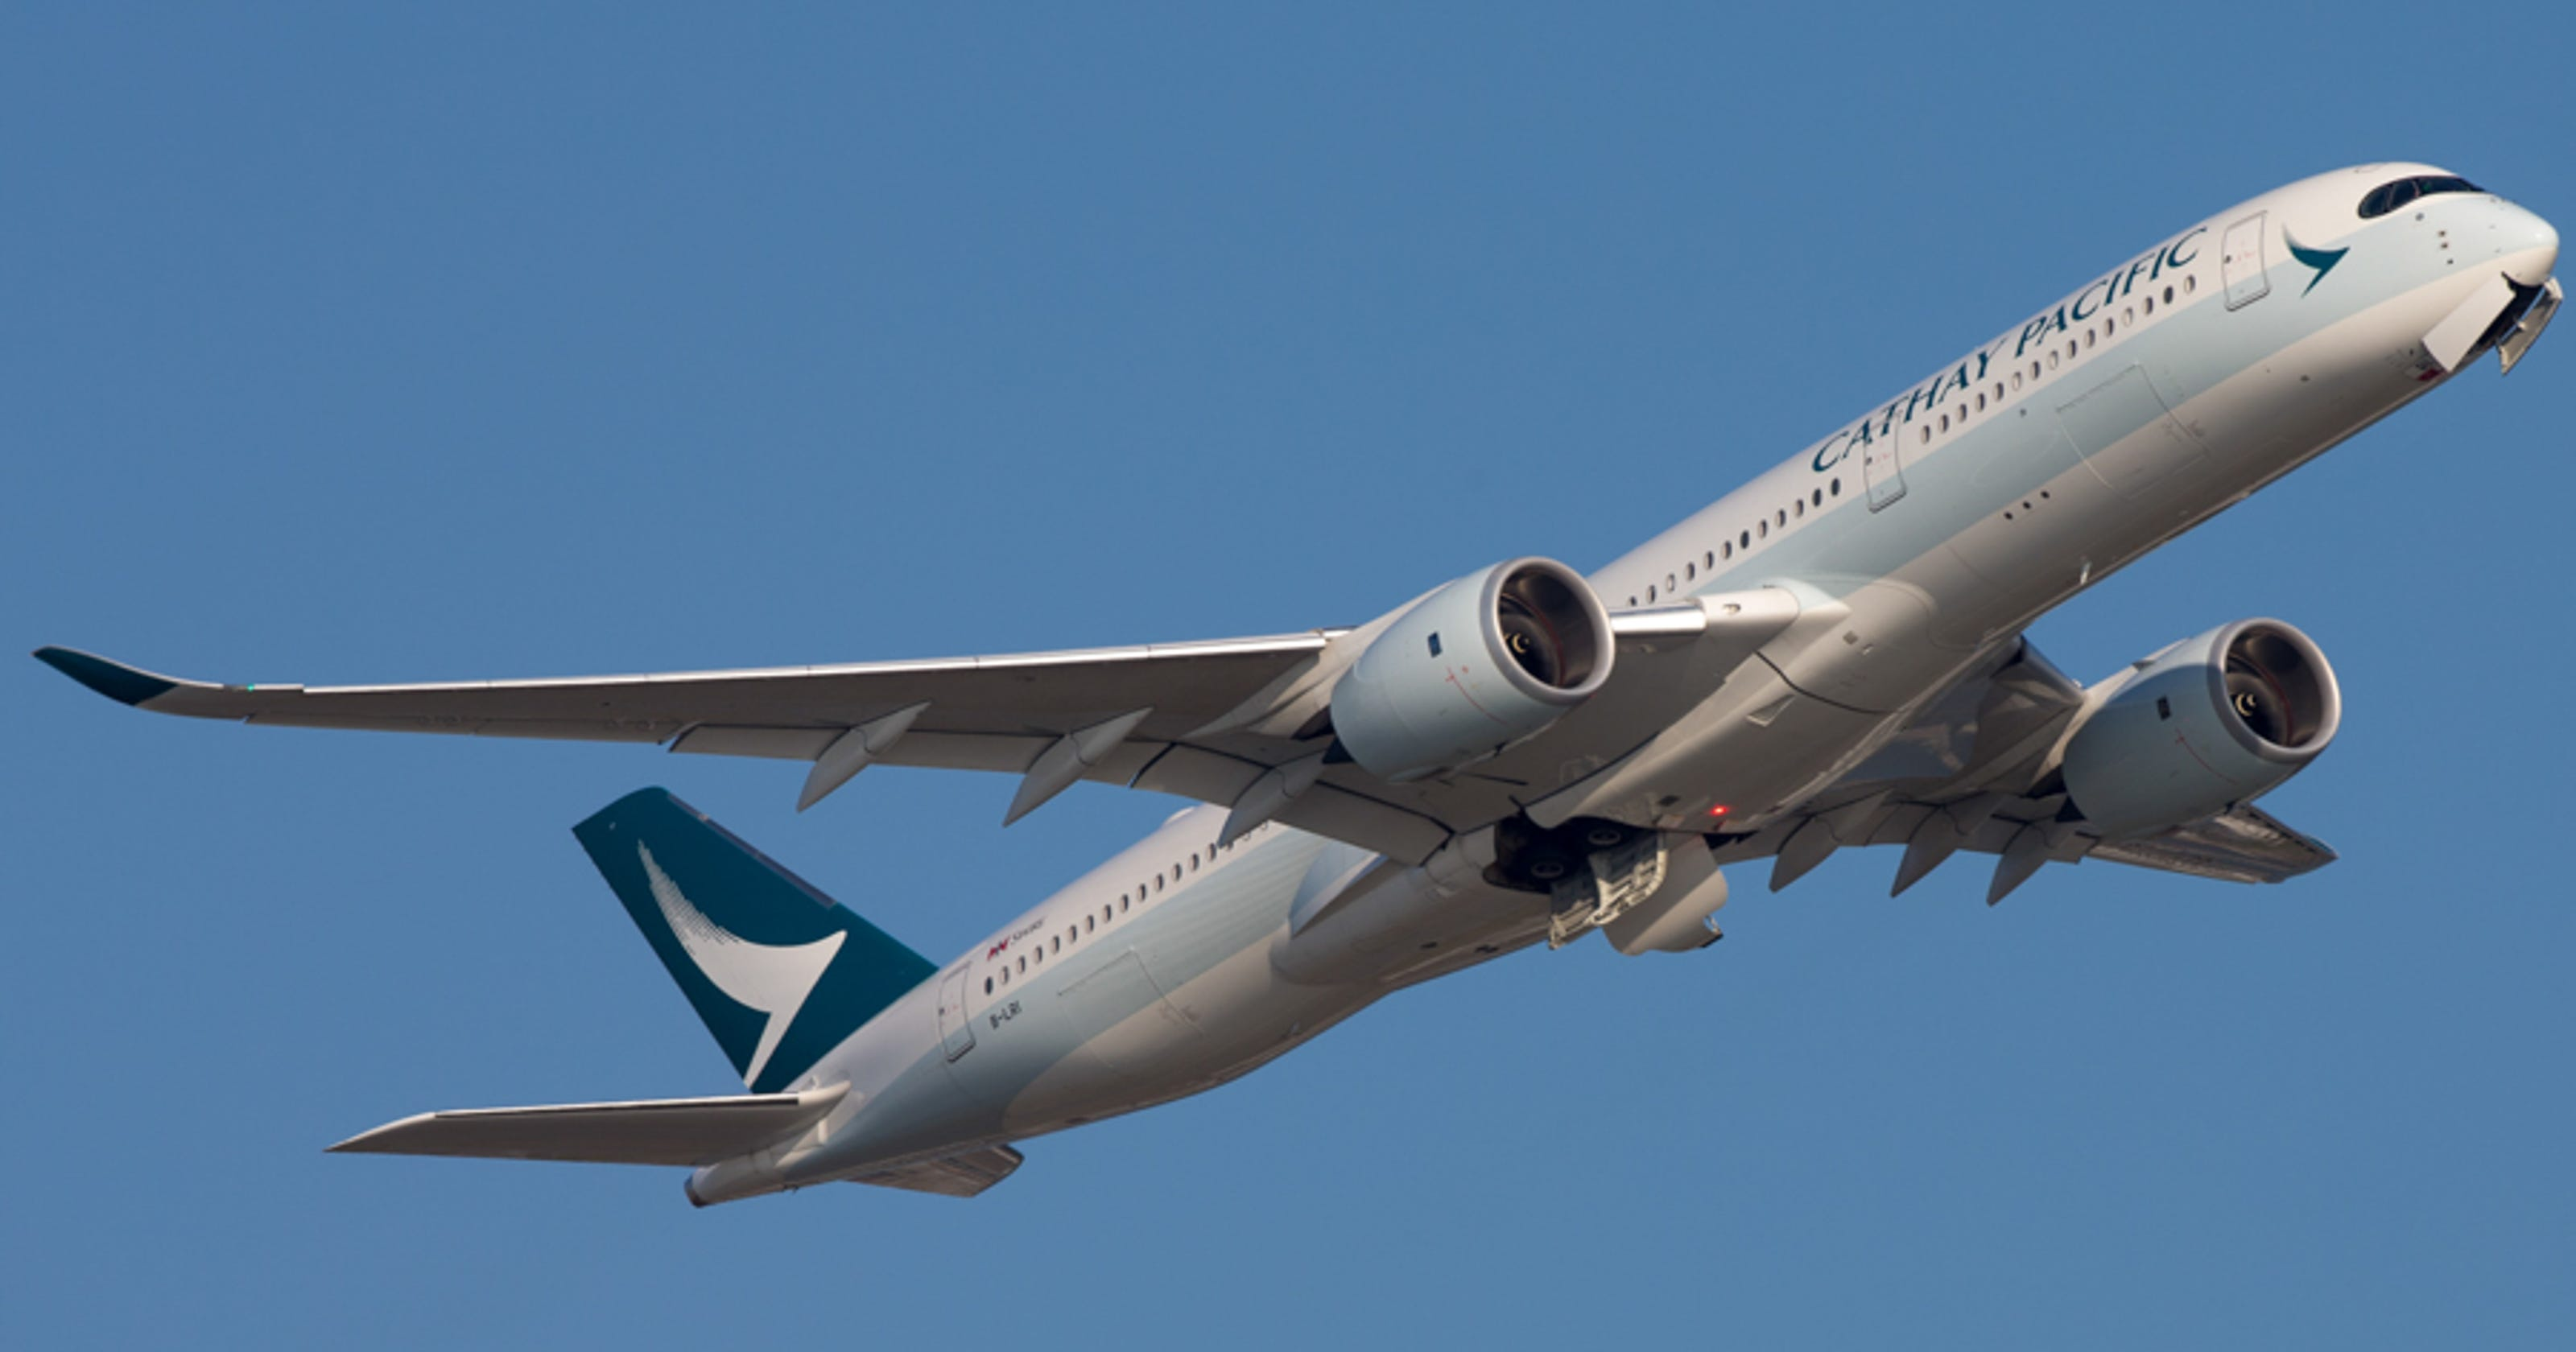 Cathay Pacific Seattle Hong Kong Non Stops Will Launch In April